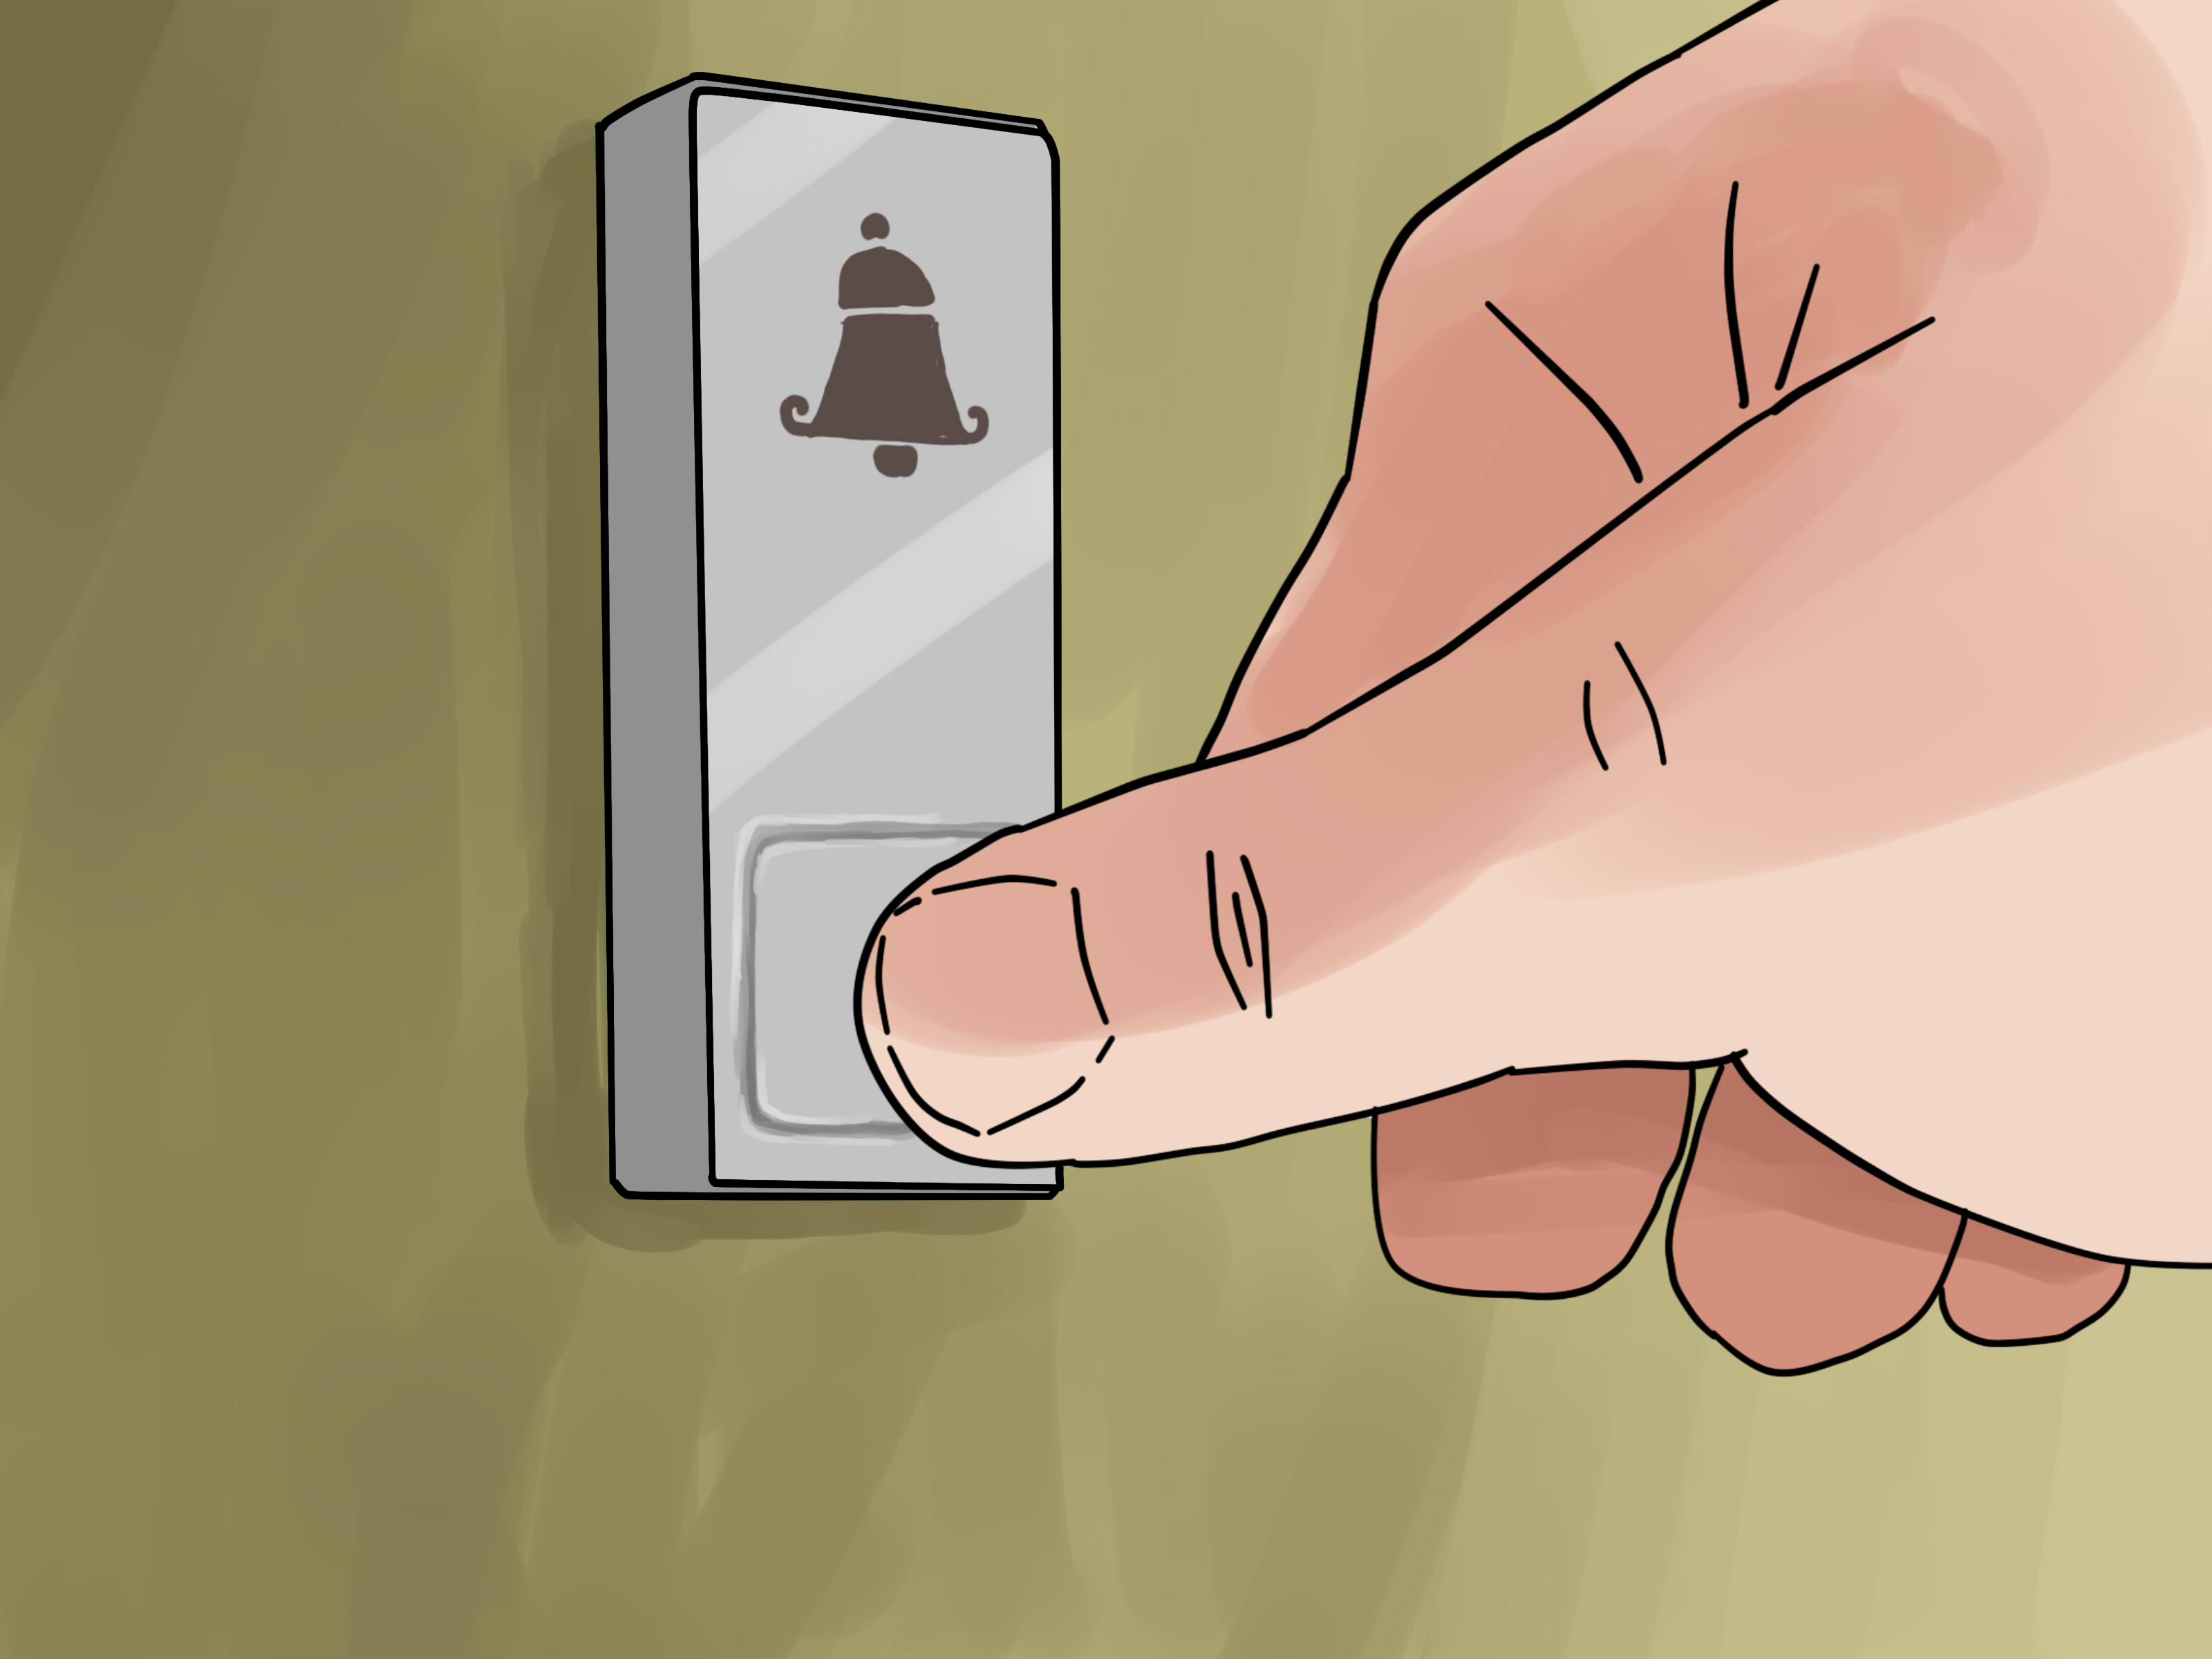 Install a Doorbell Step 8?resize\\\\\\\\\\\\\\\\\\\\\\\\\\\\\\\\\\\\\\\\\\\\\\\\\\\\\\\\\\\\\\\\\\\\\\\\\\\\\\\\\\\\\\\\\\\\\\\\\\\\\\\\\\\\\\\\\\\\\\\\\\\\\\\\\\\\\\\\\\\\\\\\\\\\\\\\\\\\\\\\\\\\\\\\\\\\\\\\\\\\\\\\\\\\\\\\\\\\\\\\\\\\\\\\\\\\\\\\\\\\\\\\\\\\\\\\\\\\\\\\\\\\\\\\\\\\\\\\\\\\\\\\\\\\\\\\\\\\\\\\\\\\\\\\\\\\\\\\\\\\\\\\\\\\\\\\\\\\\\\\\\\\\\\\\\\\\\\\\\\\\\\\\\\\\\\\\\\\\\\\\\\\\\\\\\\\\\\\\\\\\\\\\\\\\\\\\\\\\\\\\\\\\\\\\\\\\\\\\\\\\\\\\\\\\\\\\\\\\\\\\\\\\\\\\\\\\\\\\\\\\\\\\\\\\\\\\\\\\\\\\\\\\\\\\\\\\\\\\\\\\\\\\\\\\\=665%2C499 100 [ wiring a doorbell diagram ] friedland d454 warbler  at reclaimingppi.co